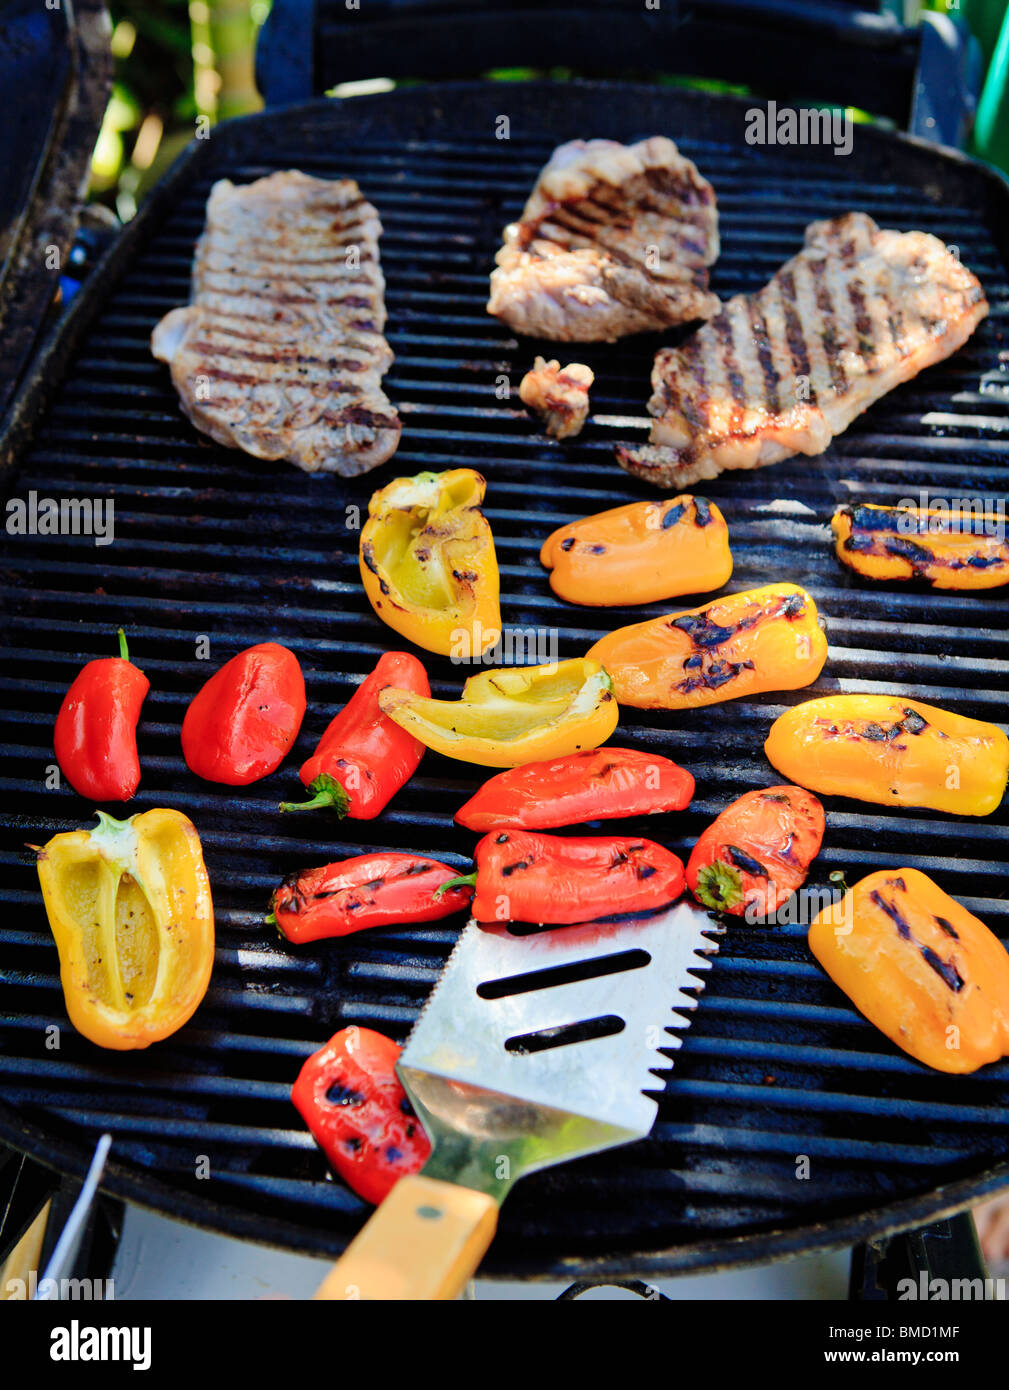 steaks and peppers on the barbecue grill - Stock Image